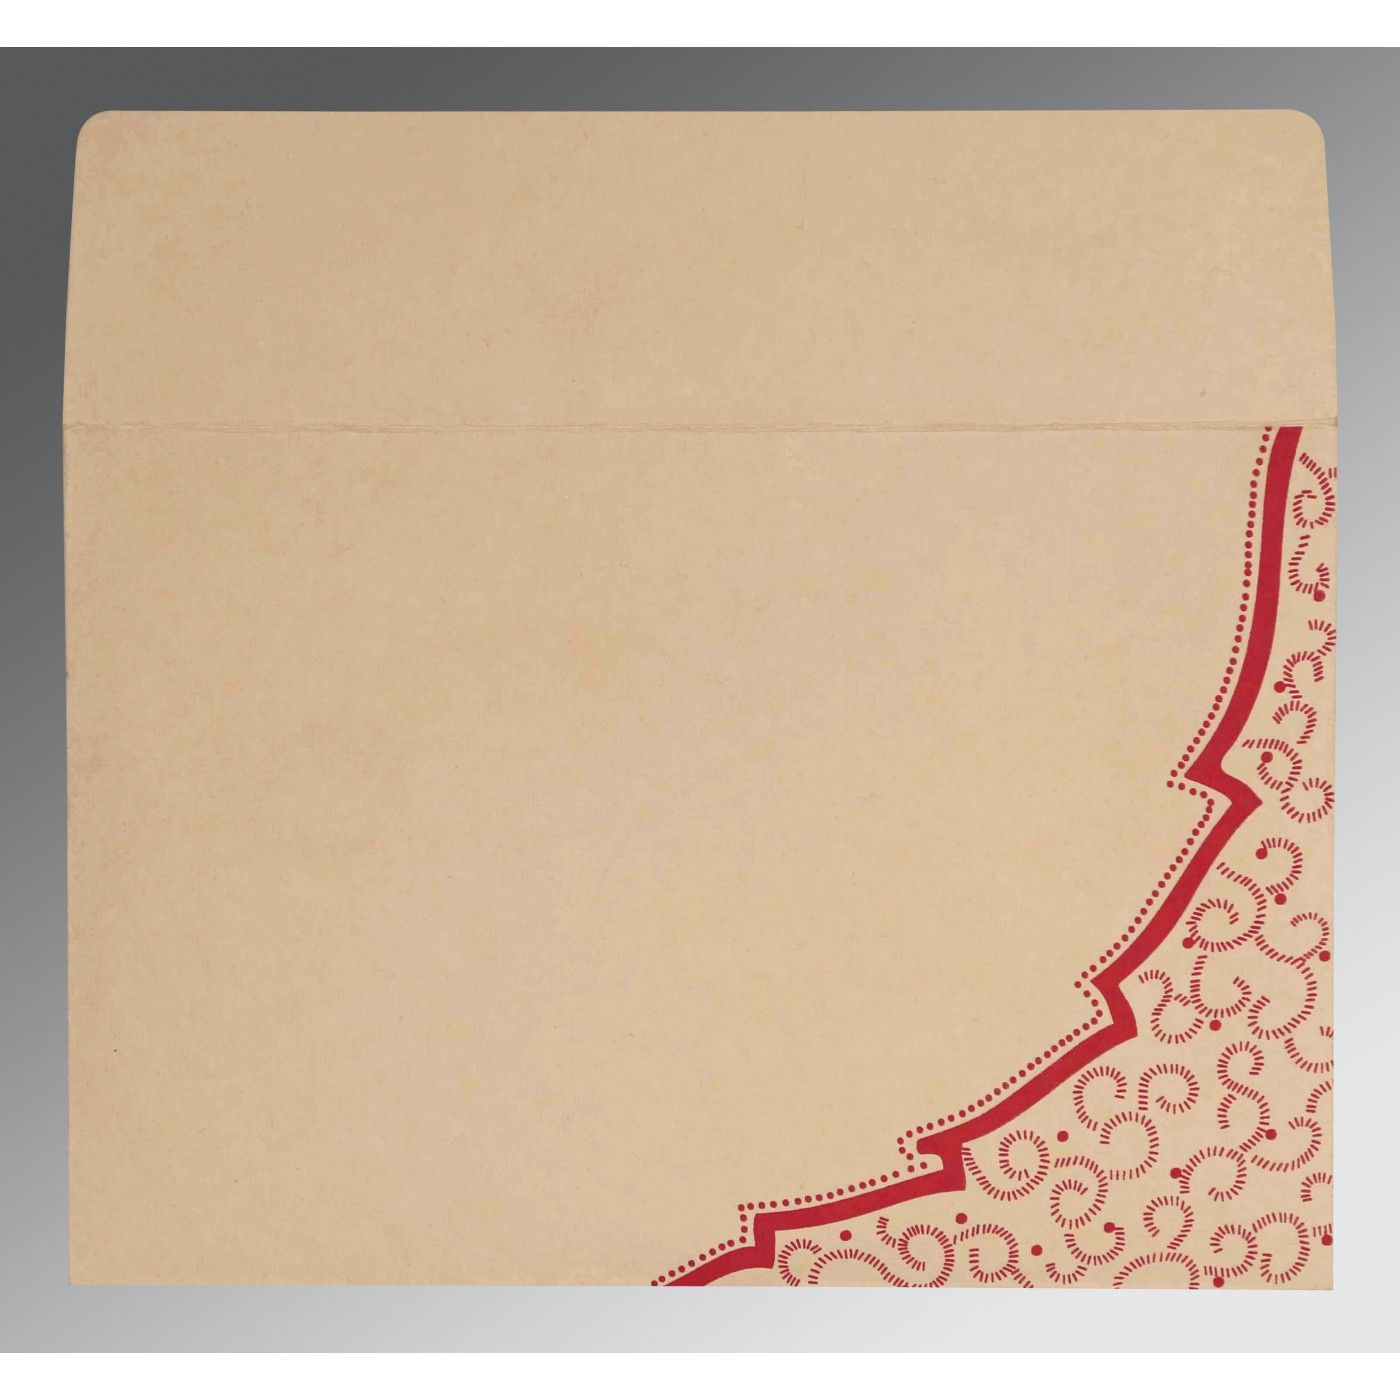 BABY PINK HANDMADE COTTON FLORAL THEMED - FOIL STAMPED WEDDING CARD : CRU-8219D - IndianWeddingCards